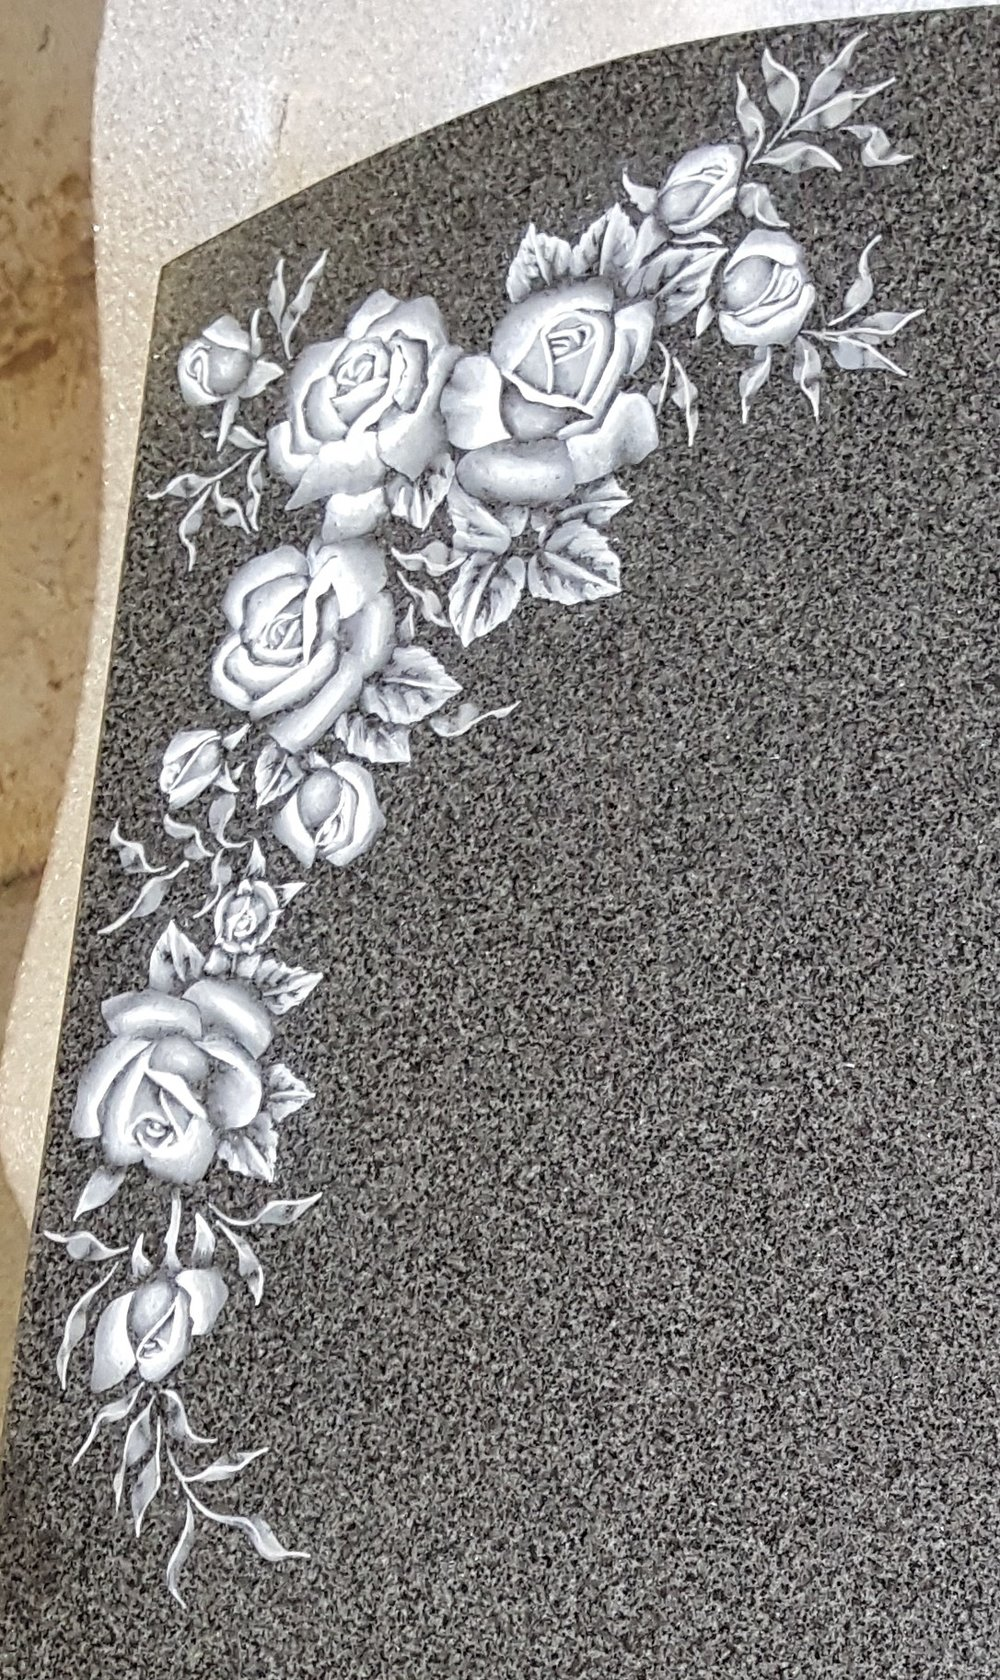 Monochrome floral design